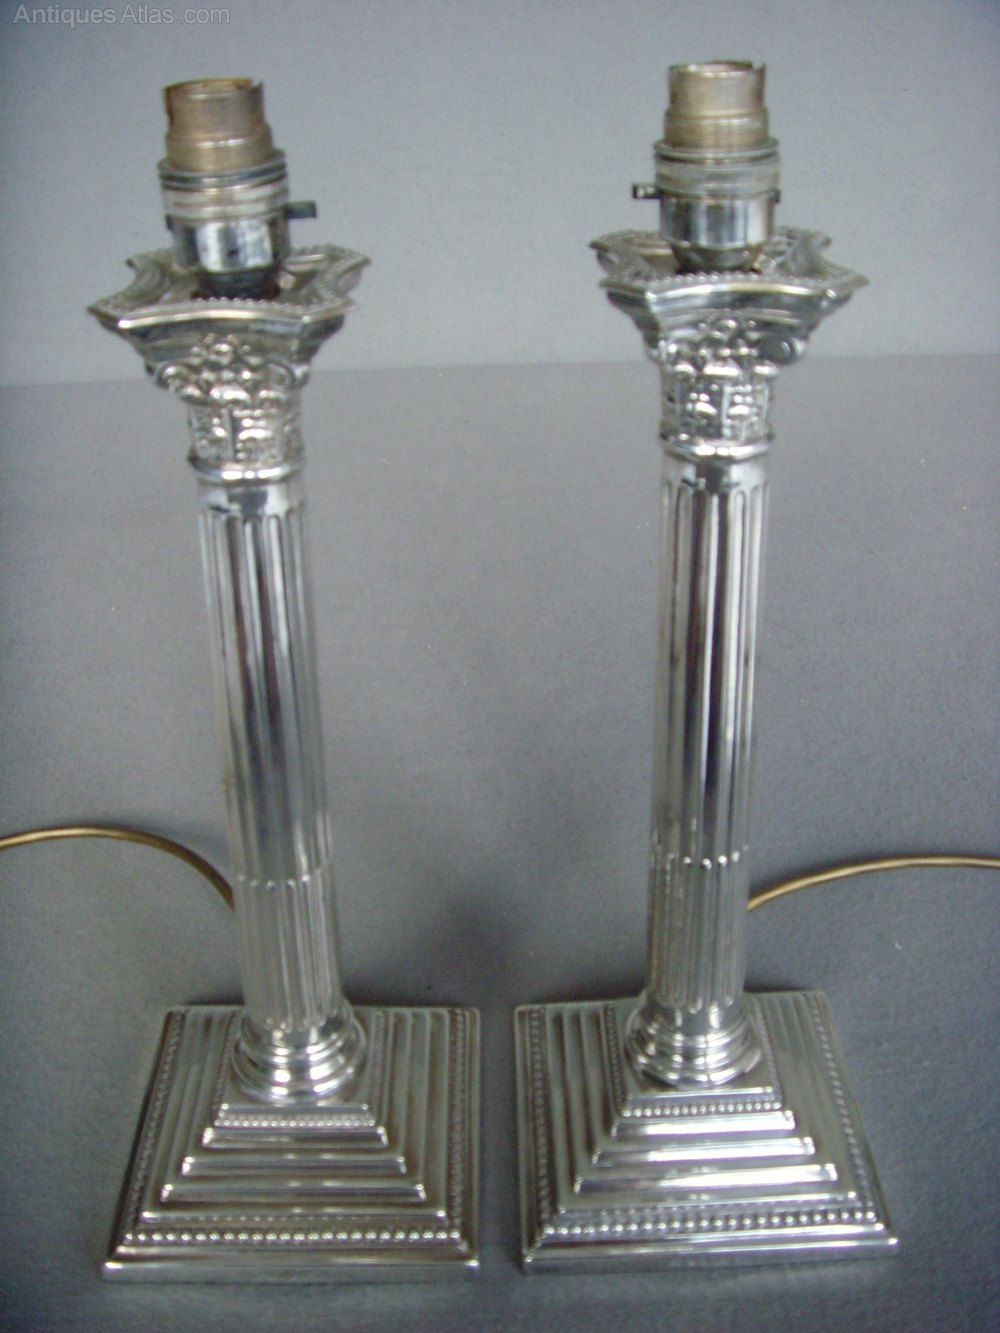 Antiques atlas pair silver plated corinthian column lamp bases pair silver plated corinthian column lamp bases antique lighting table lamps geotapseo Choice Image